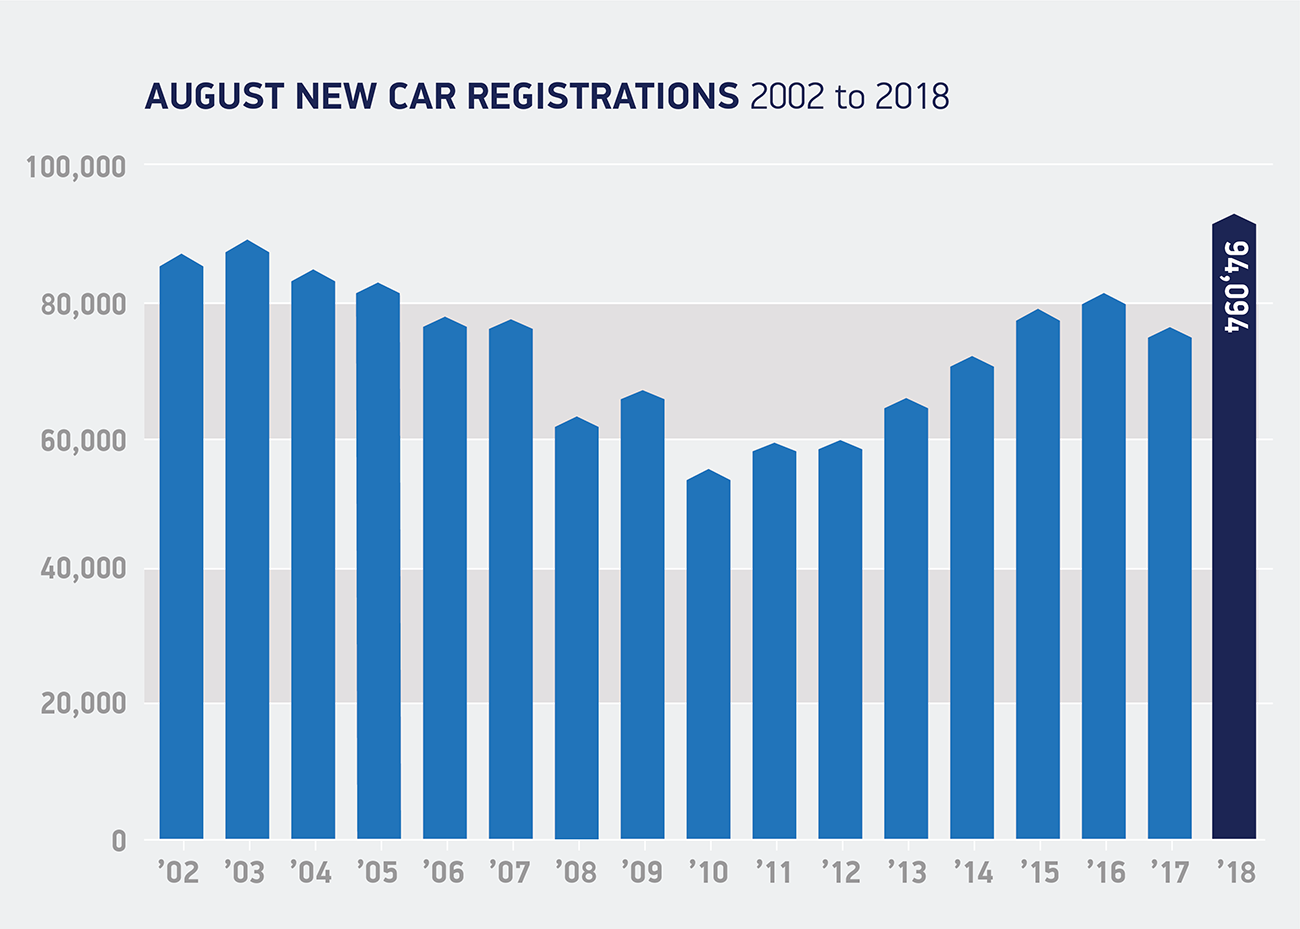 August registrations 2002 to 2018